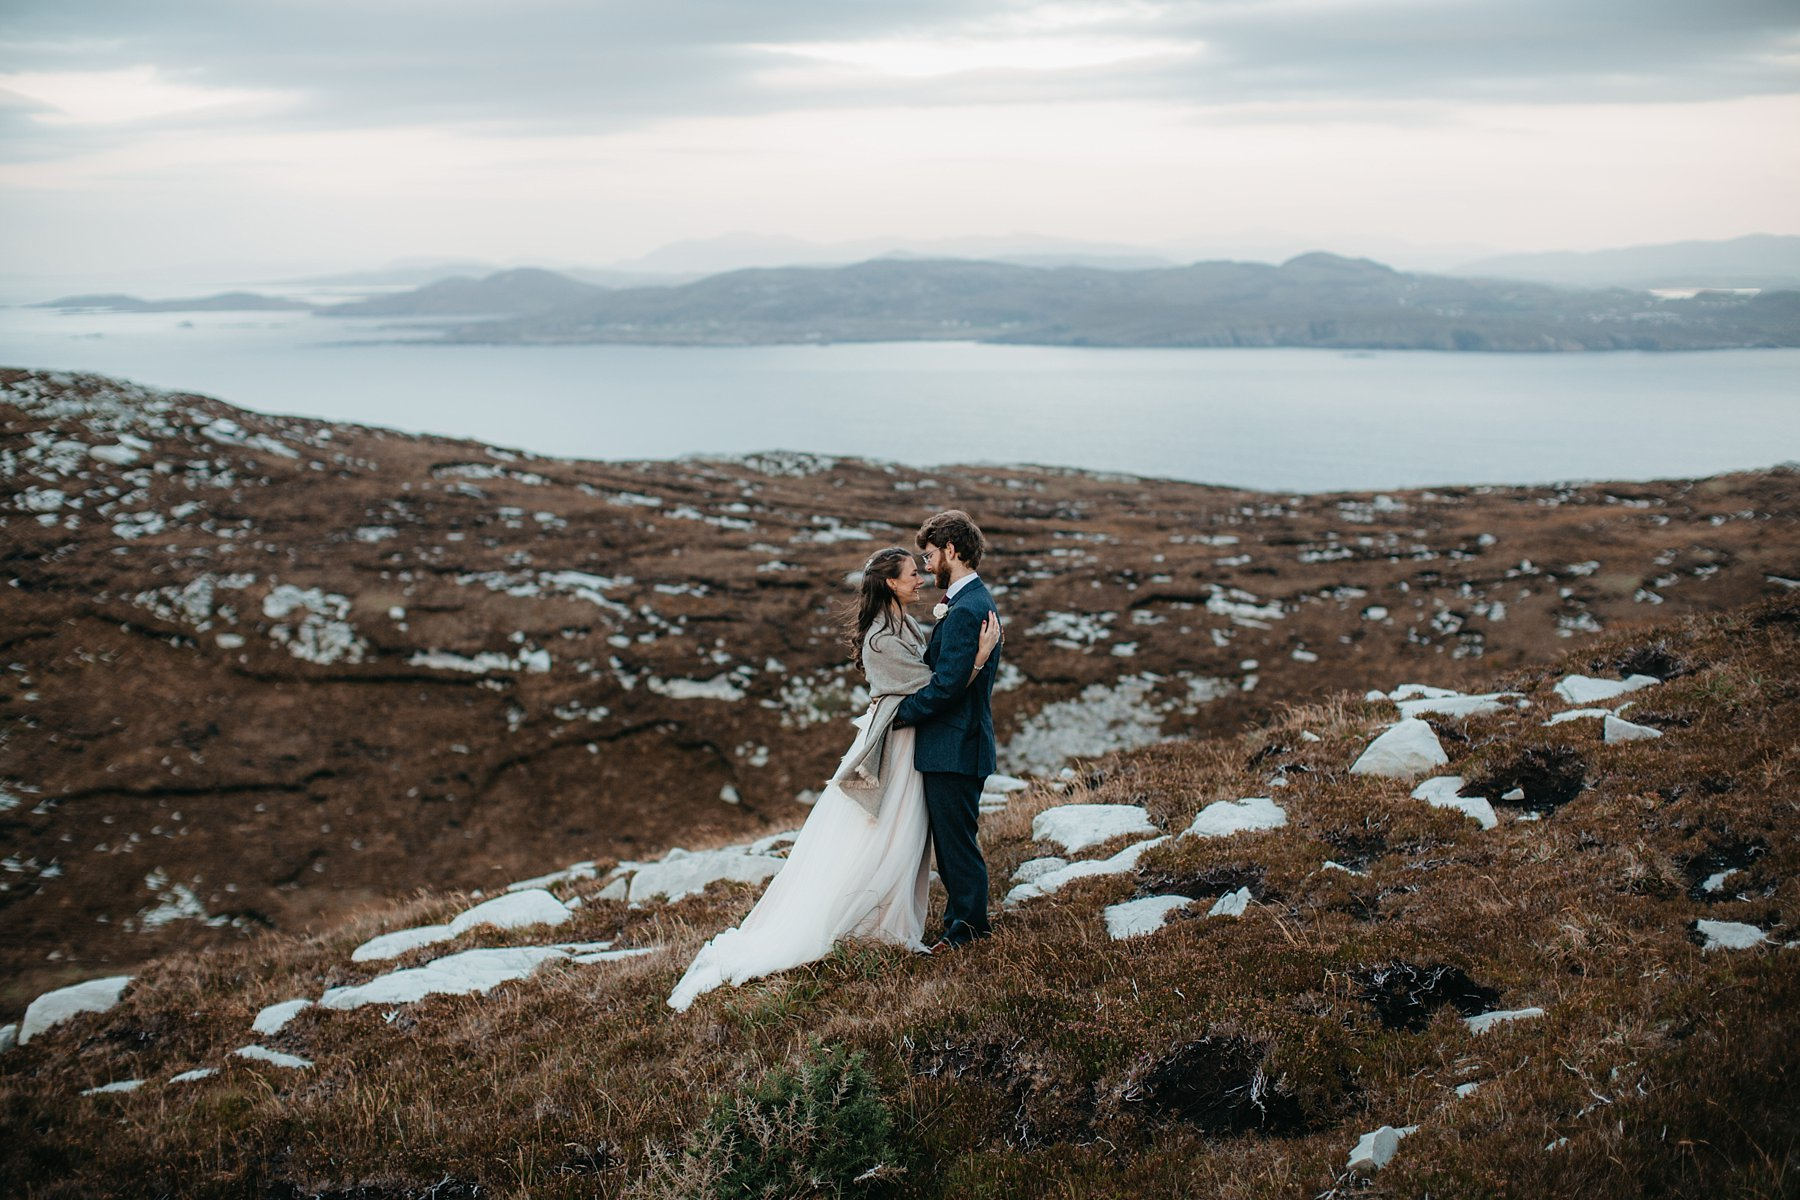 hornhead_donegak_elopement_weddings_0087